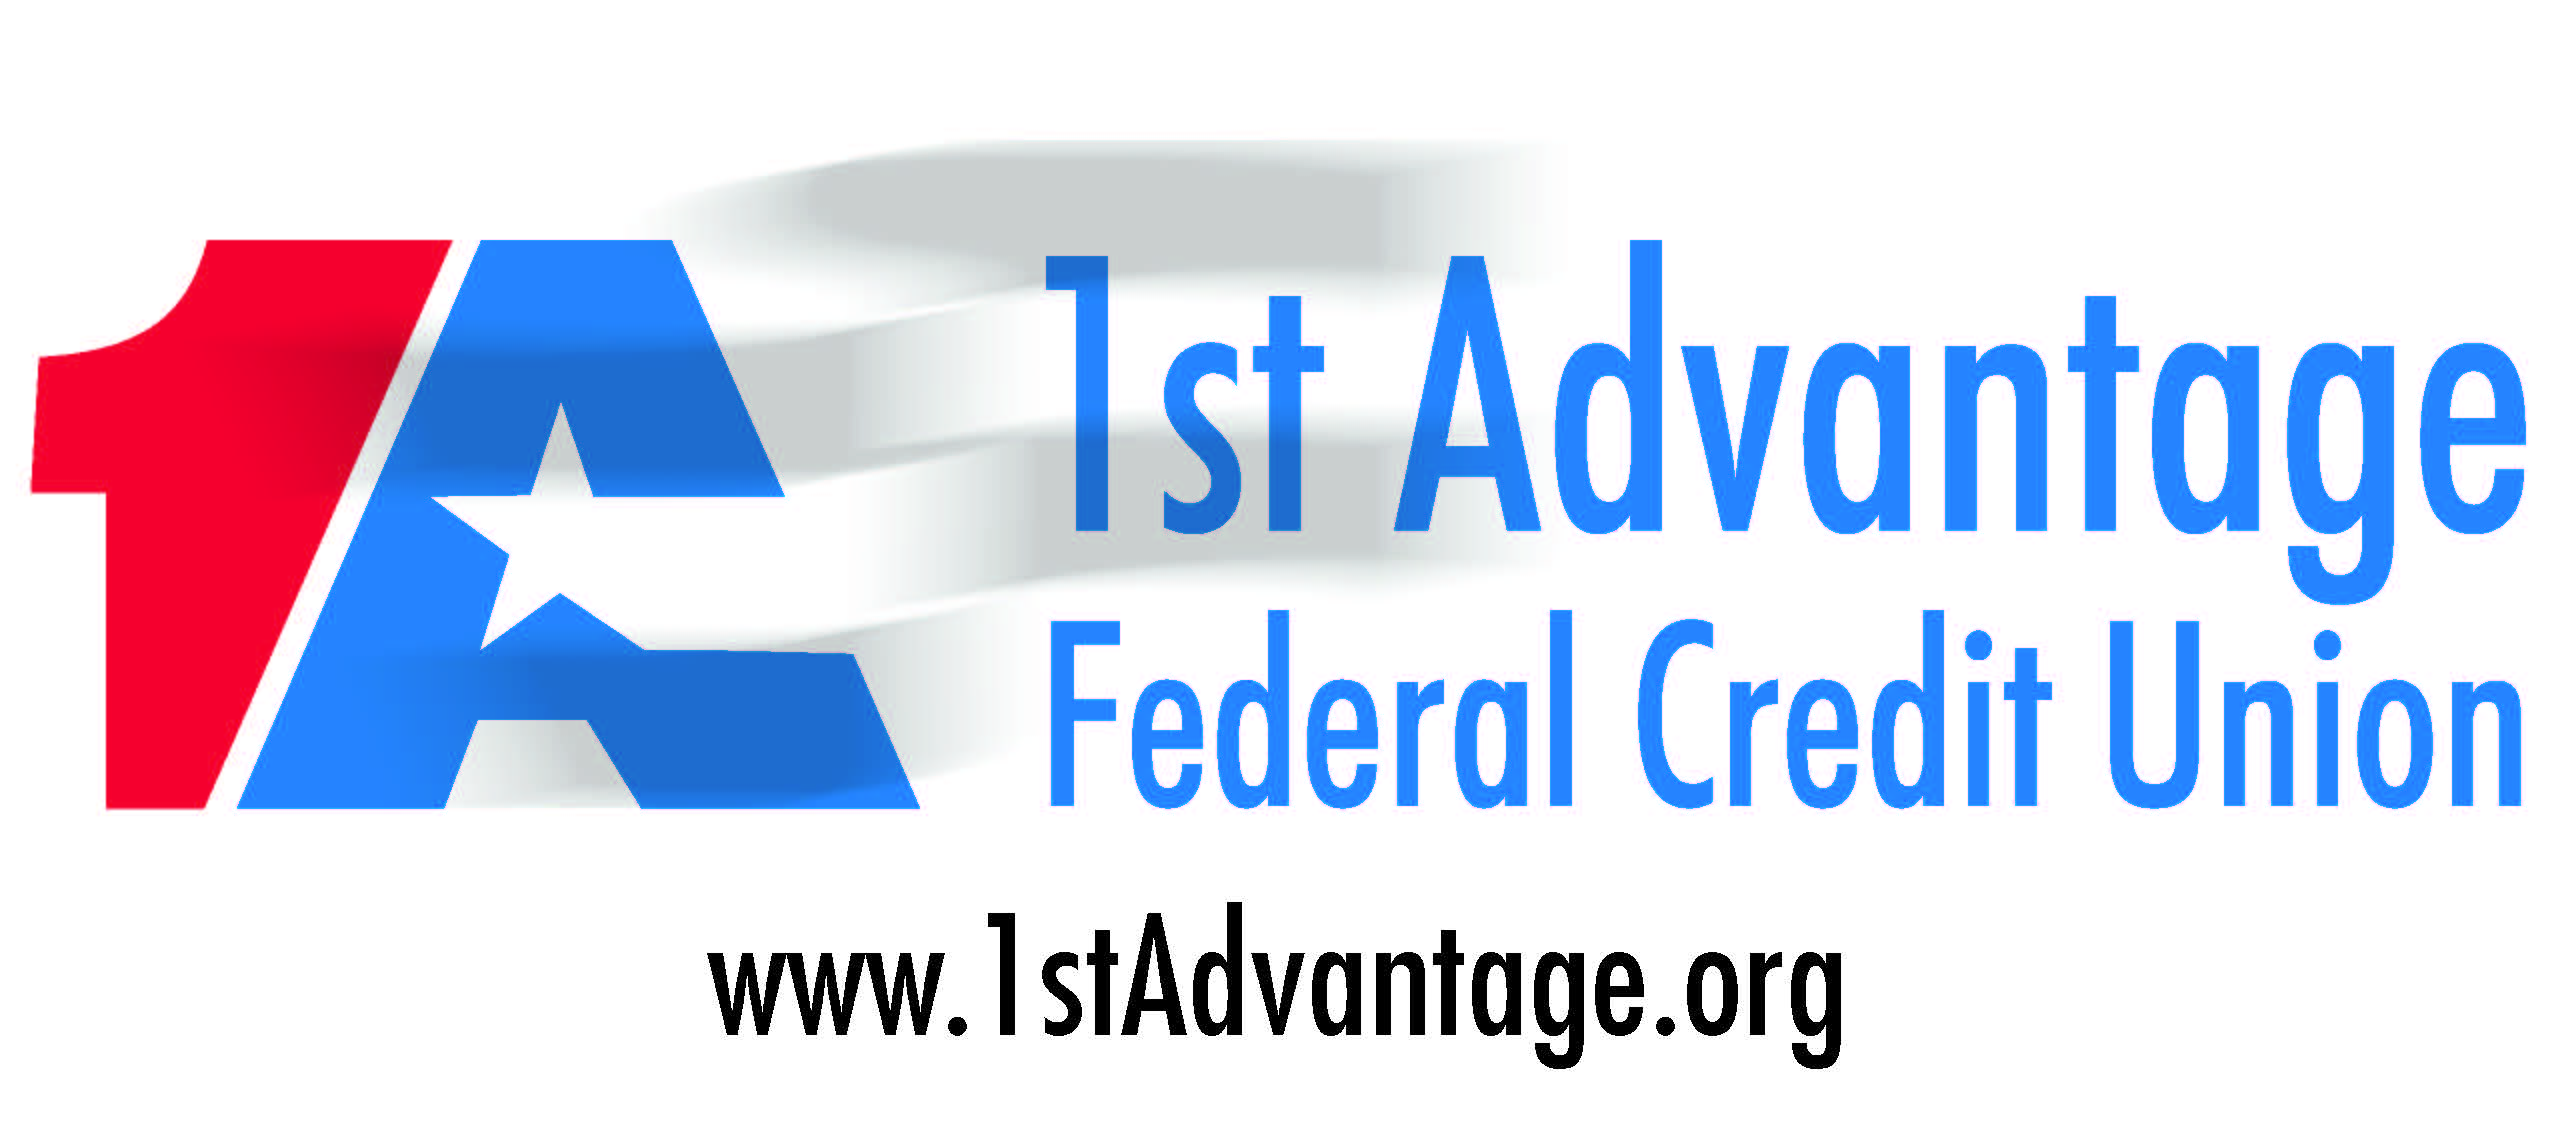 1st-Advantage-logo-5.2.2013